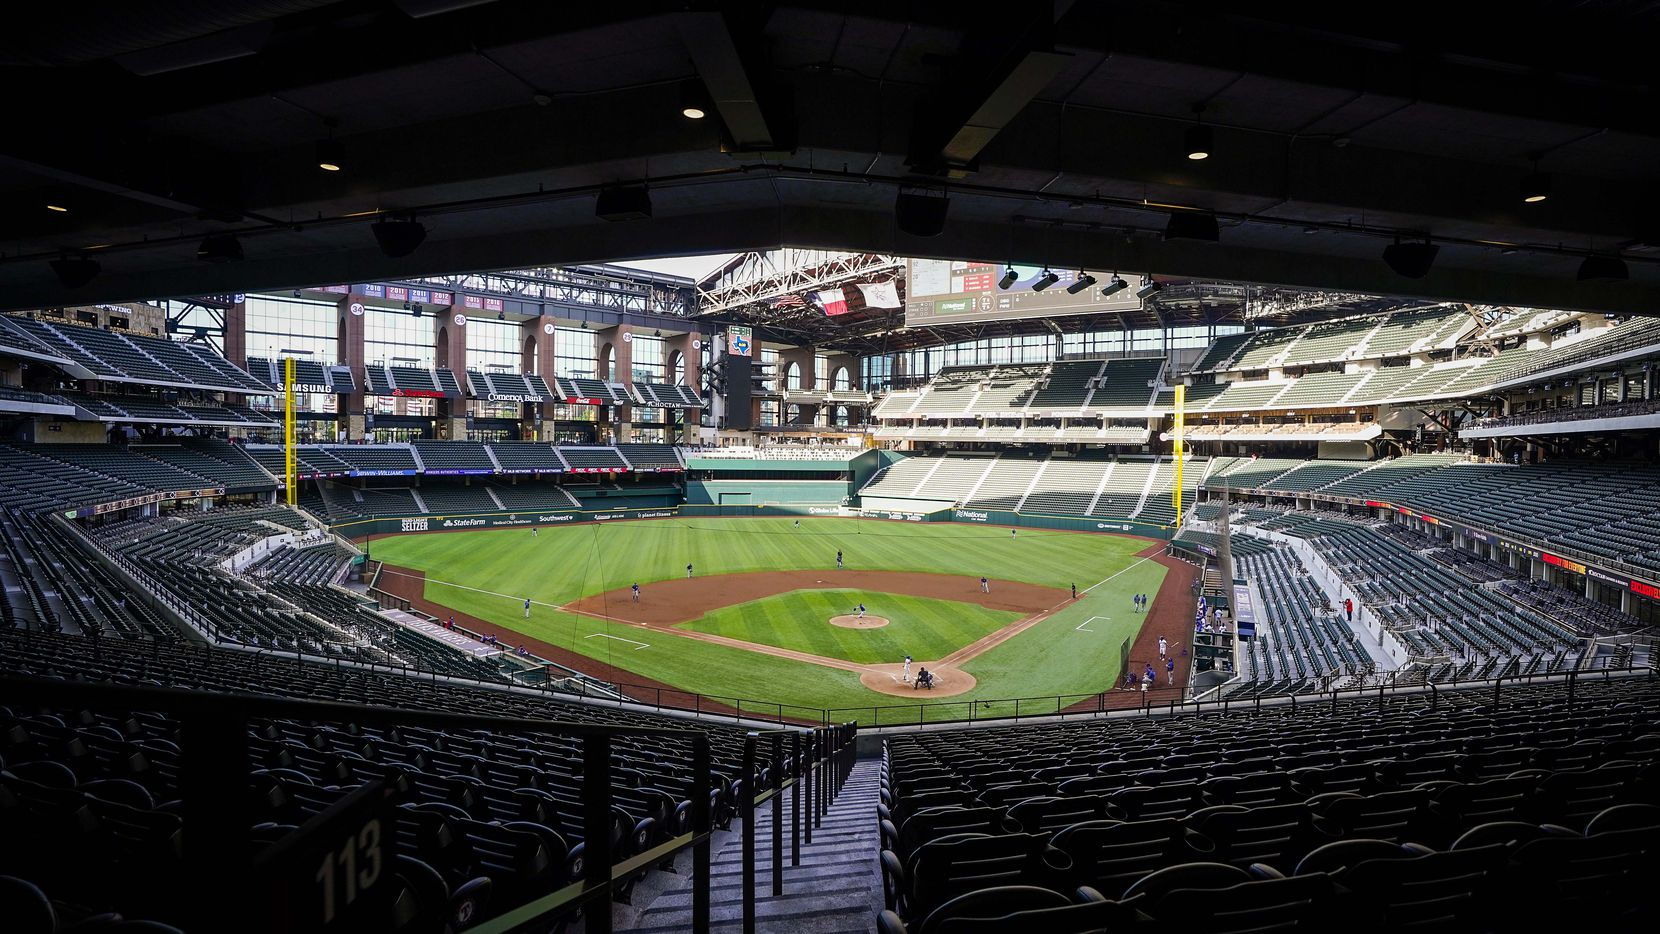 The retractable roof is open for an intrasquad game during Texas Rangers Summer Camp at Globe Life Field on Friday, July 17, 2020.